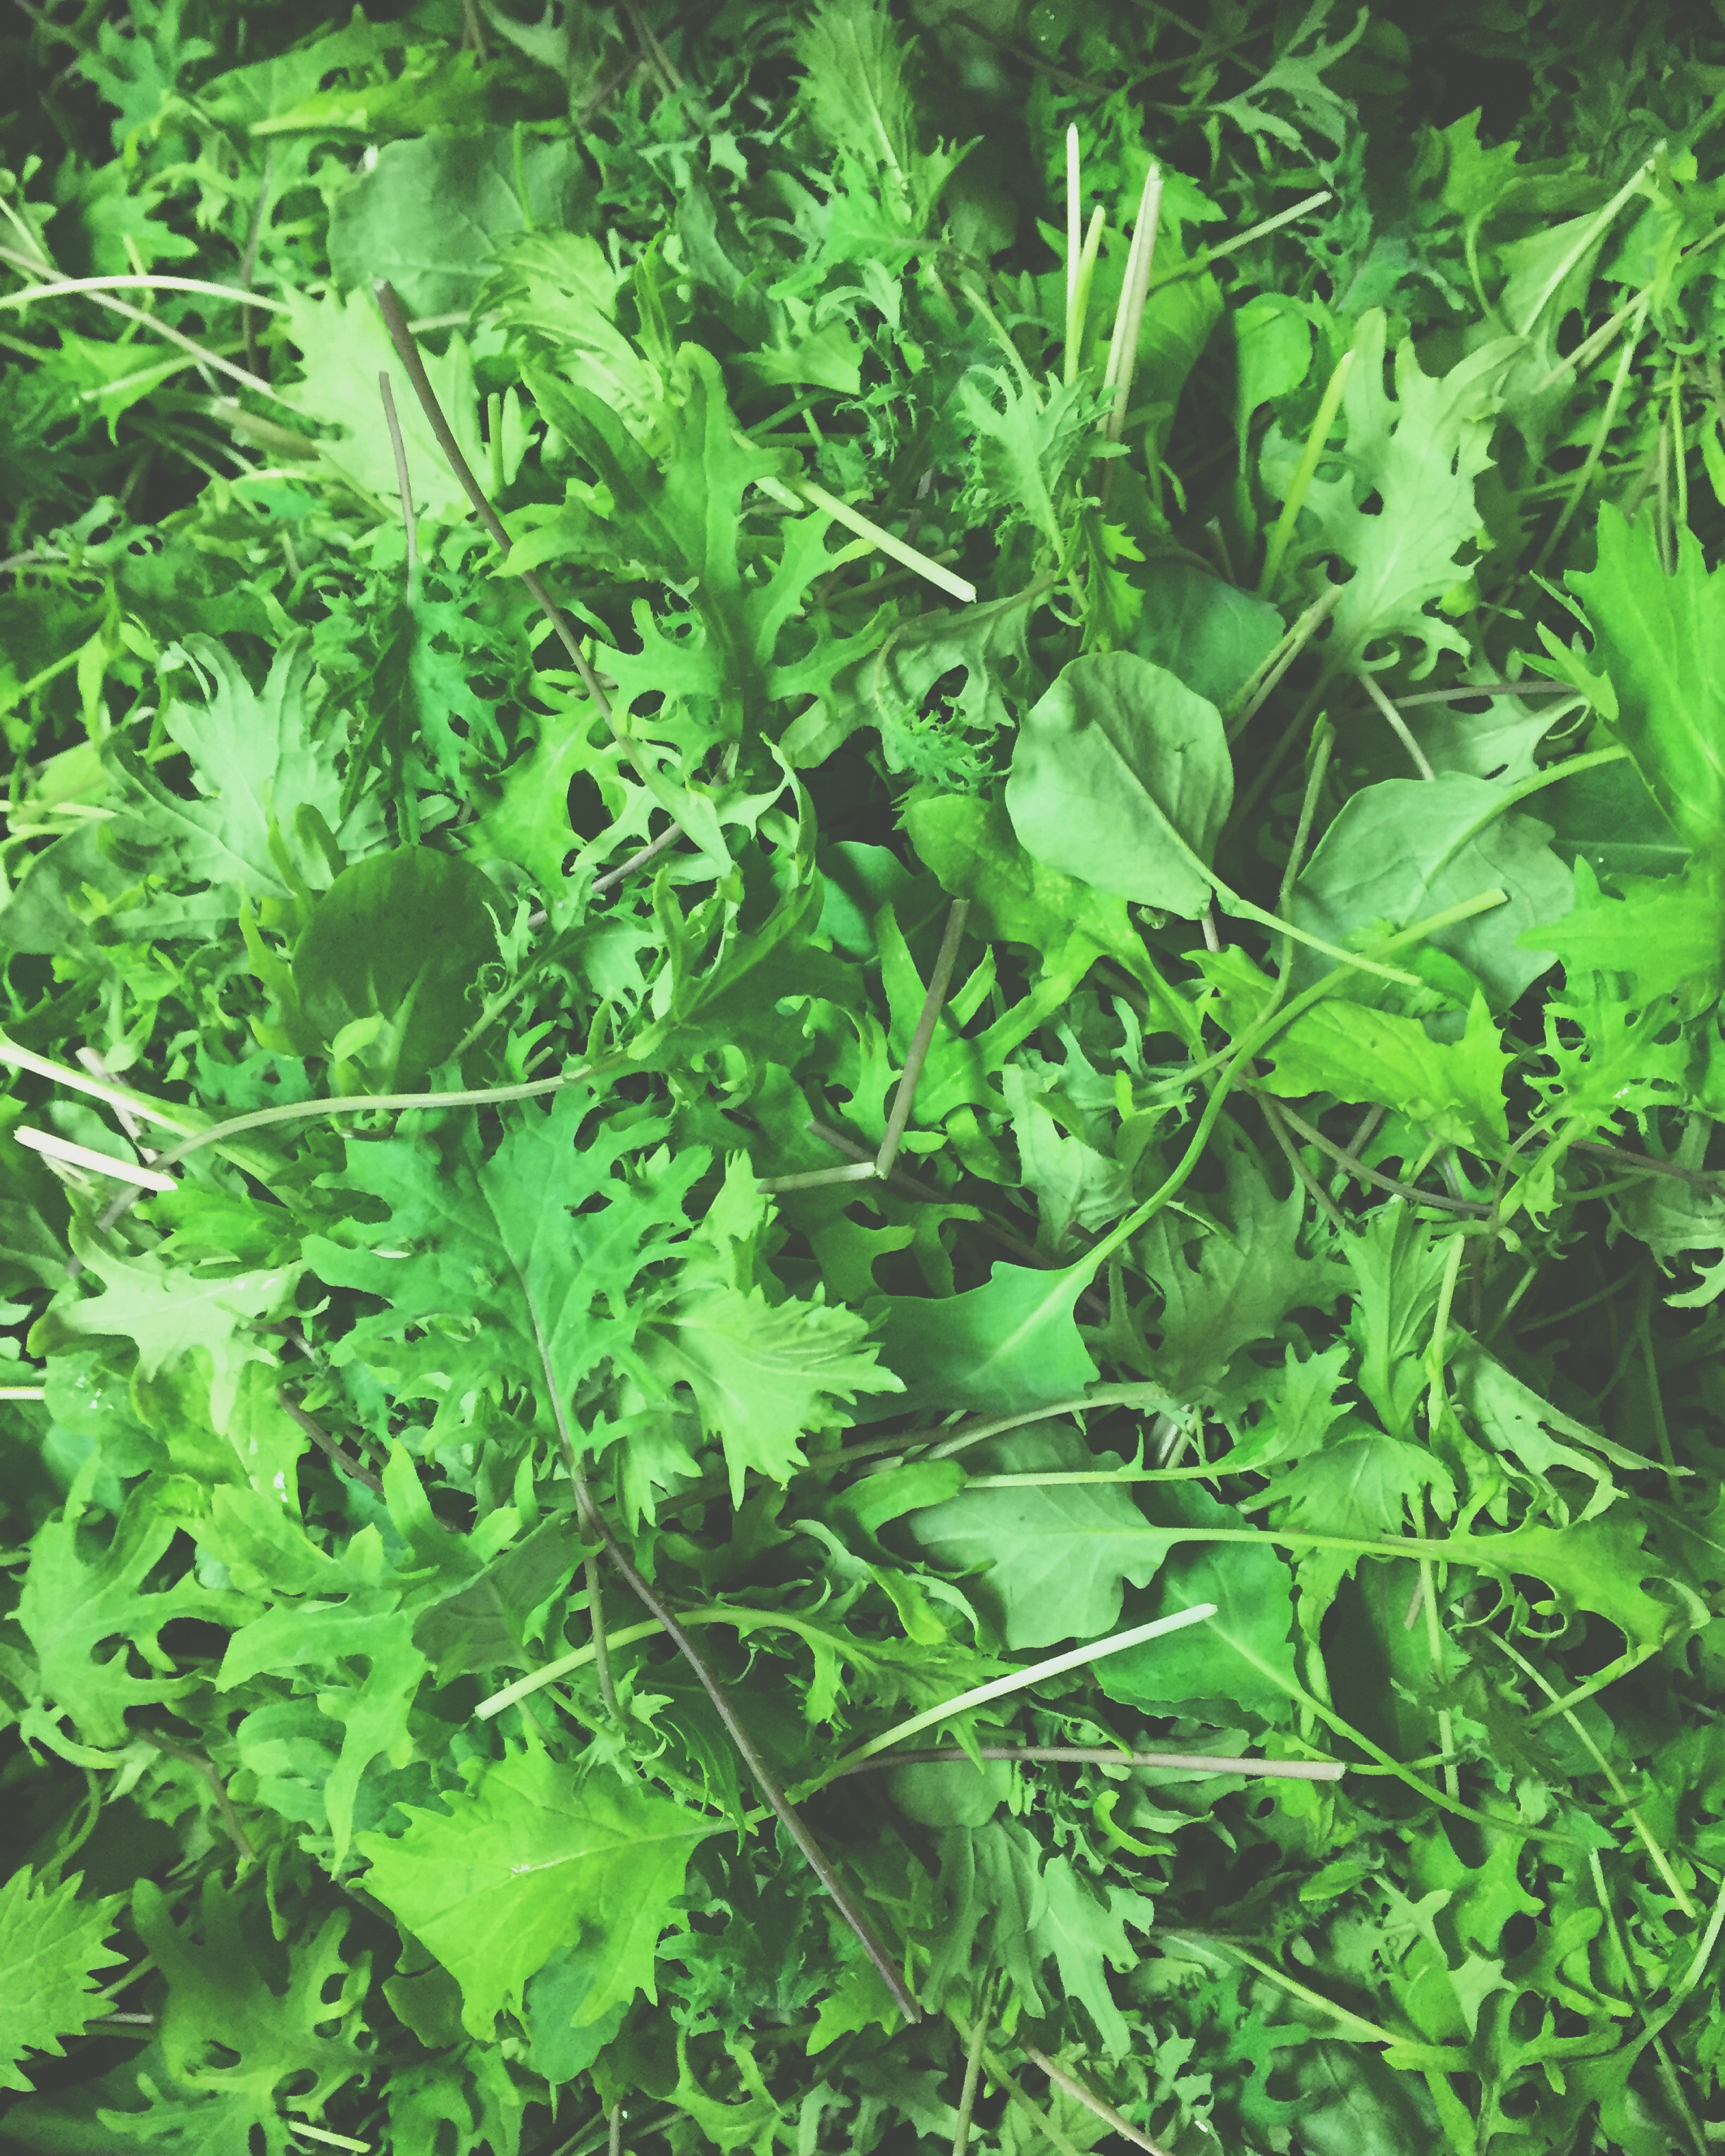 Salad green beauties locally grown in Pennsylvania by my favorites at Peace Tree Farm// Plumsteadville, Pennsylvania